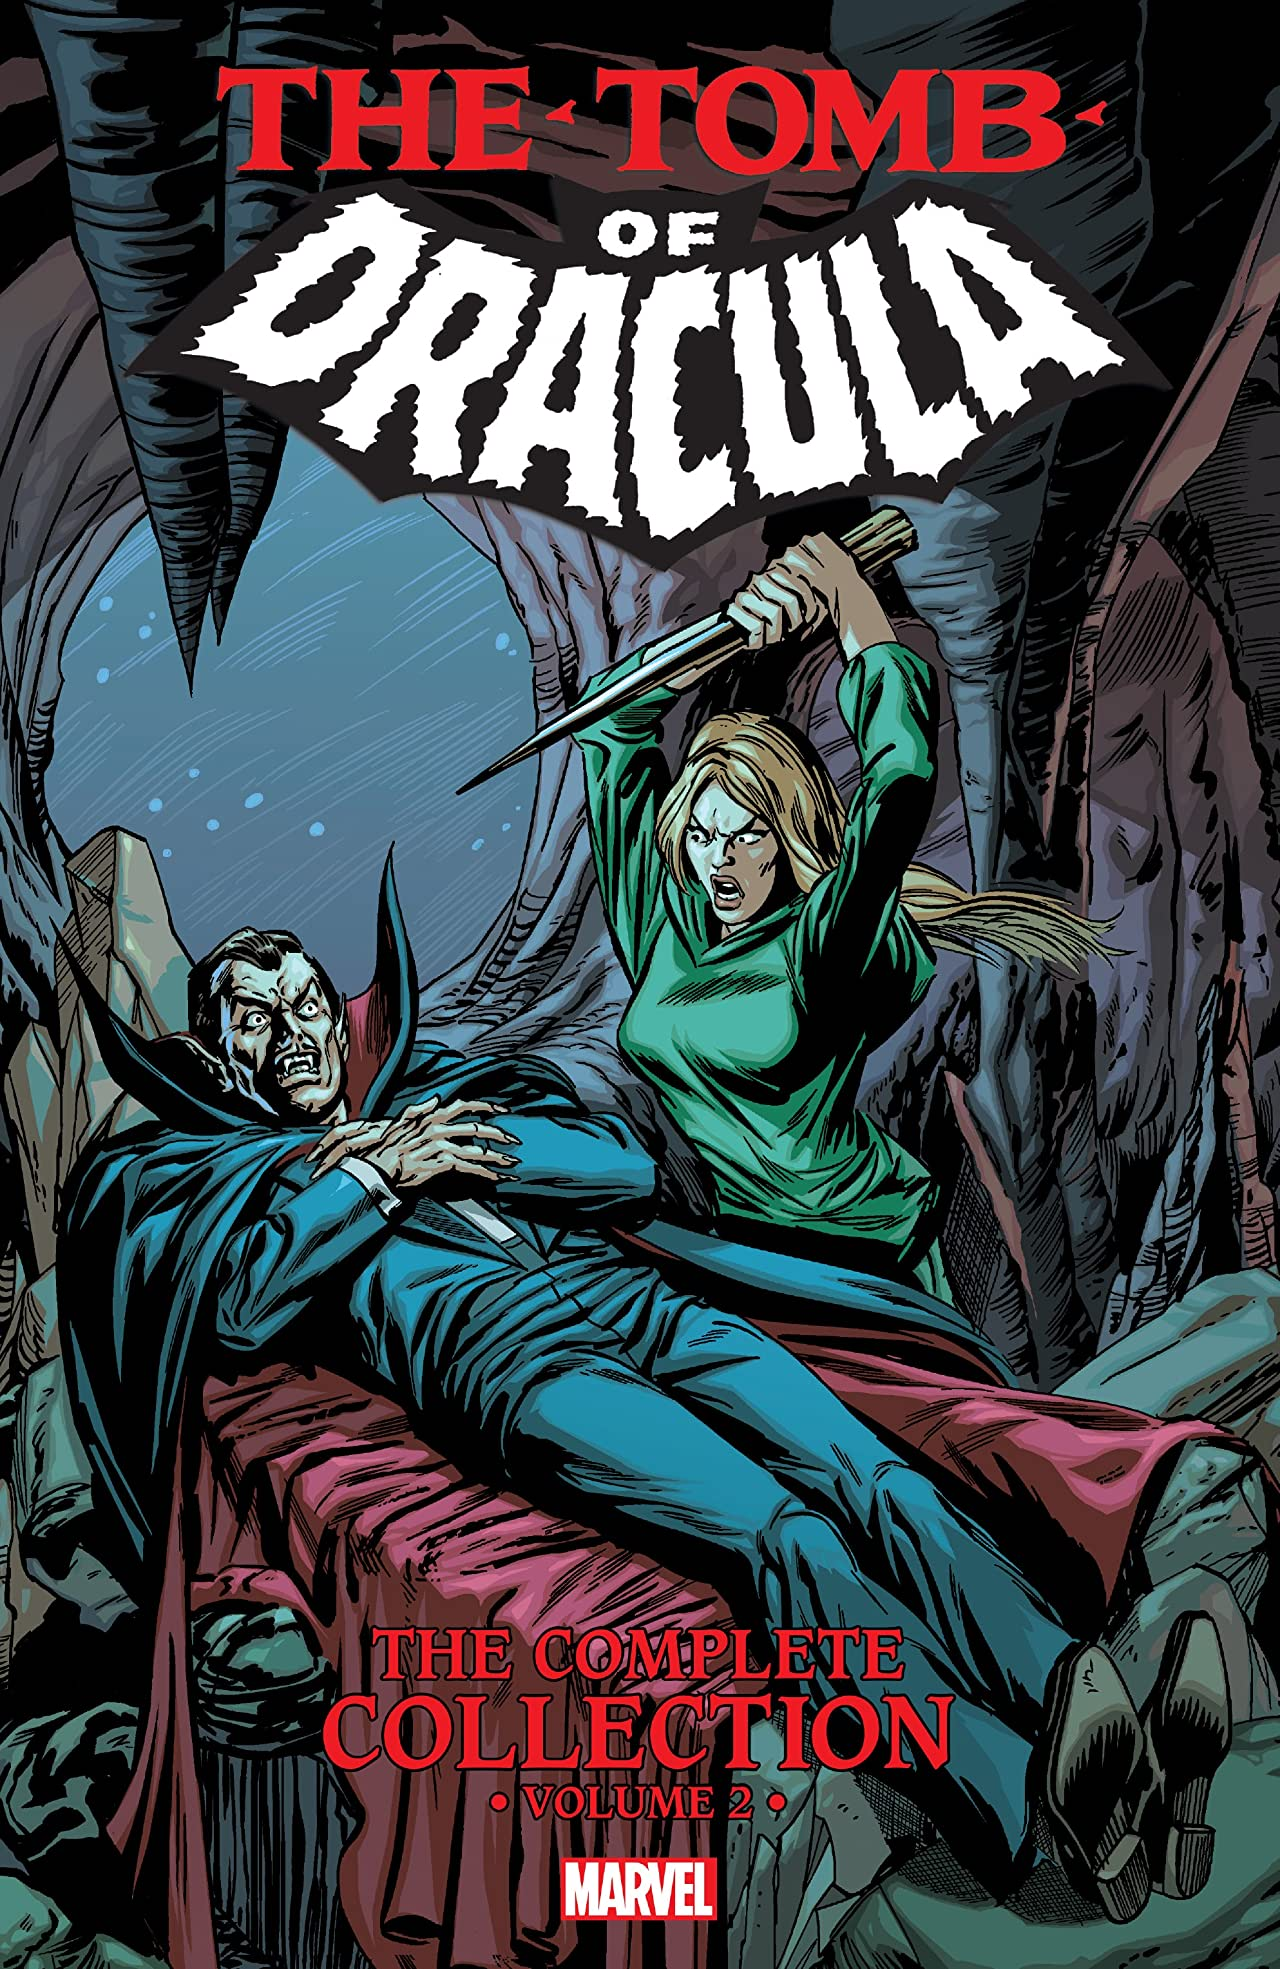 Tomb of Dracula: The Complete Collection Vol. 2